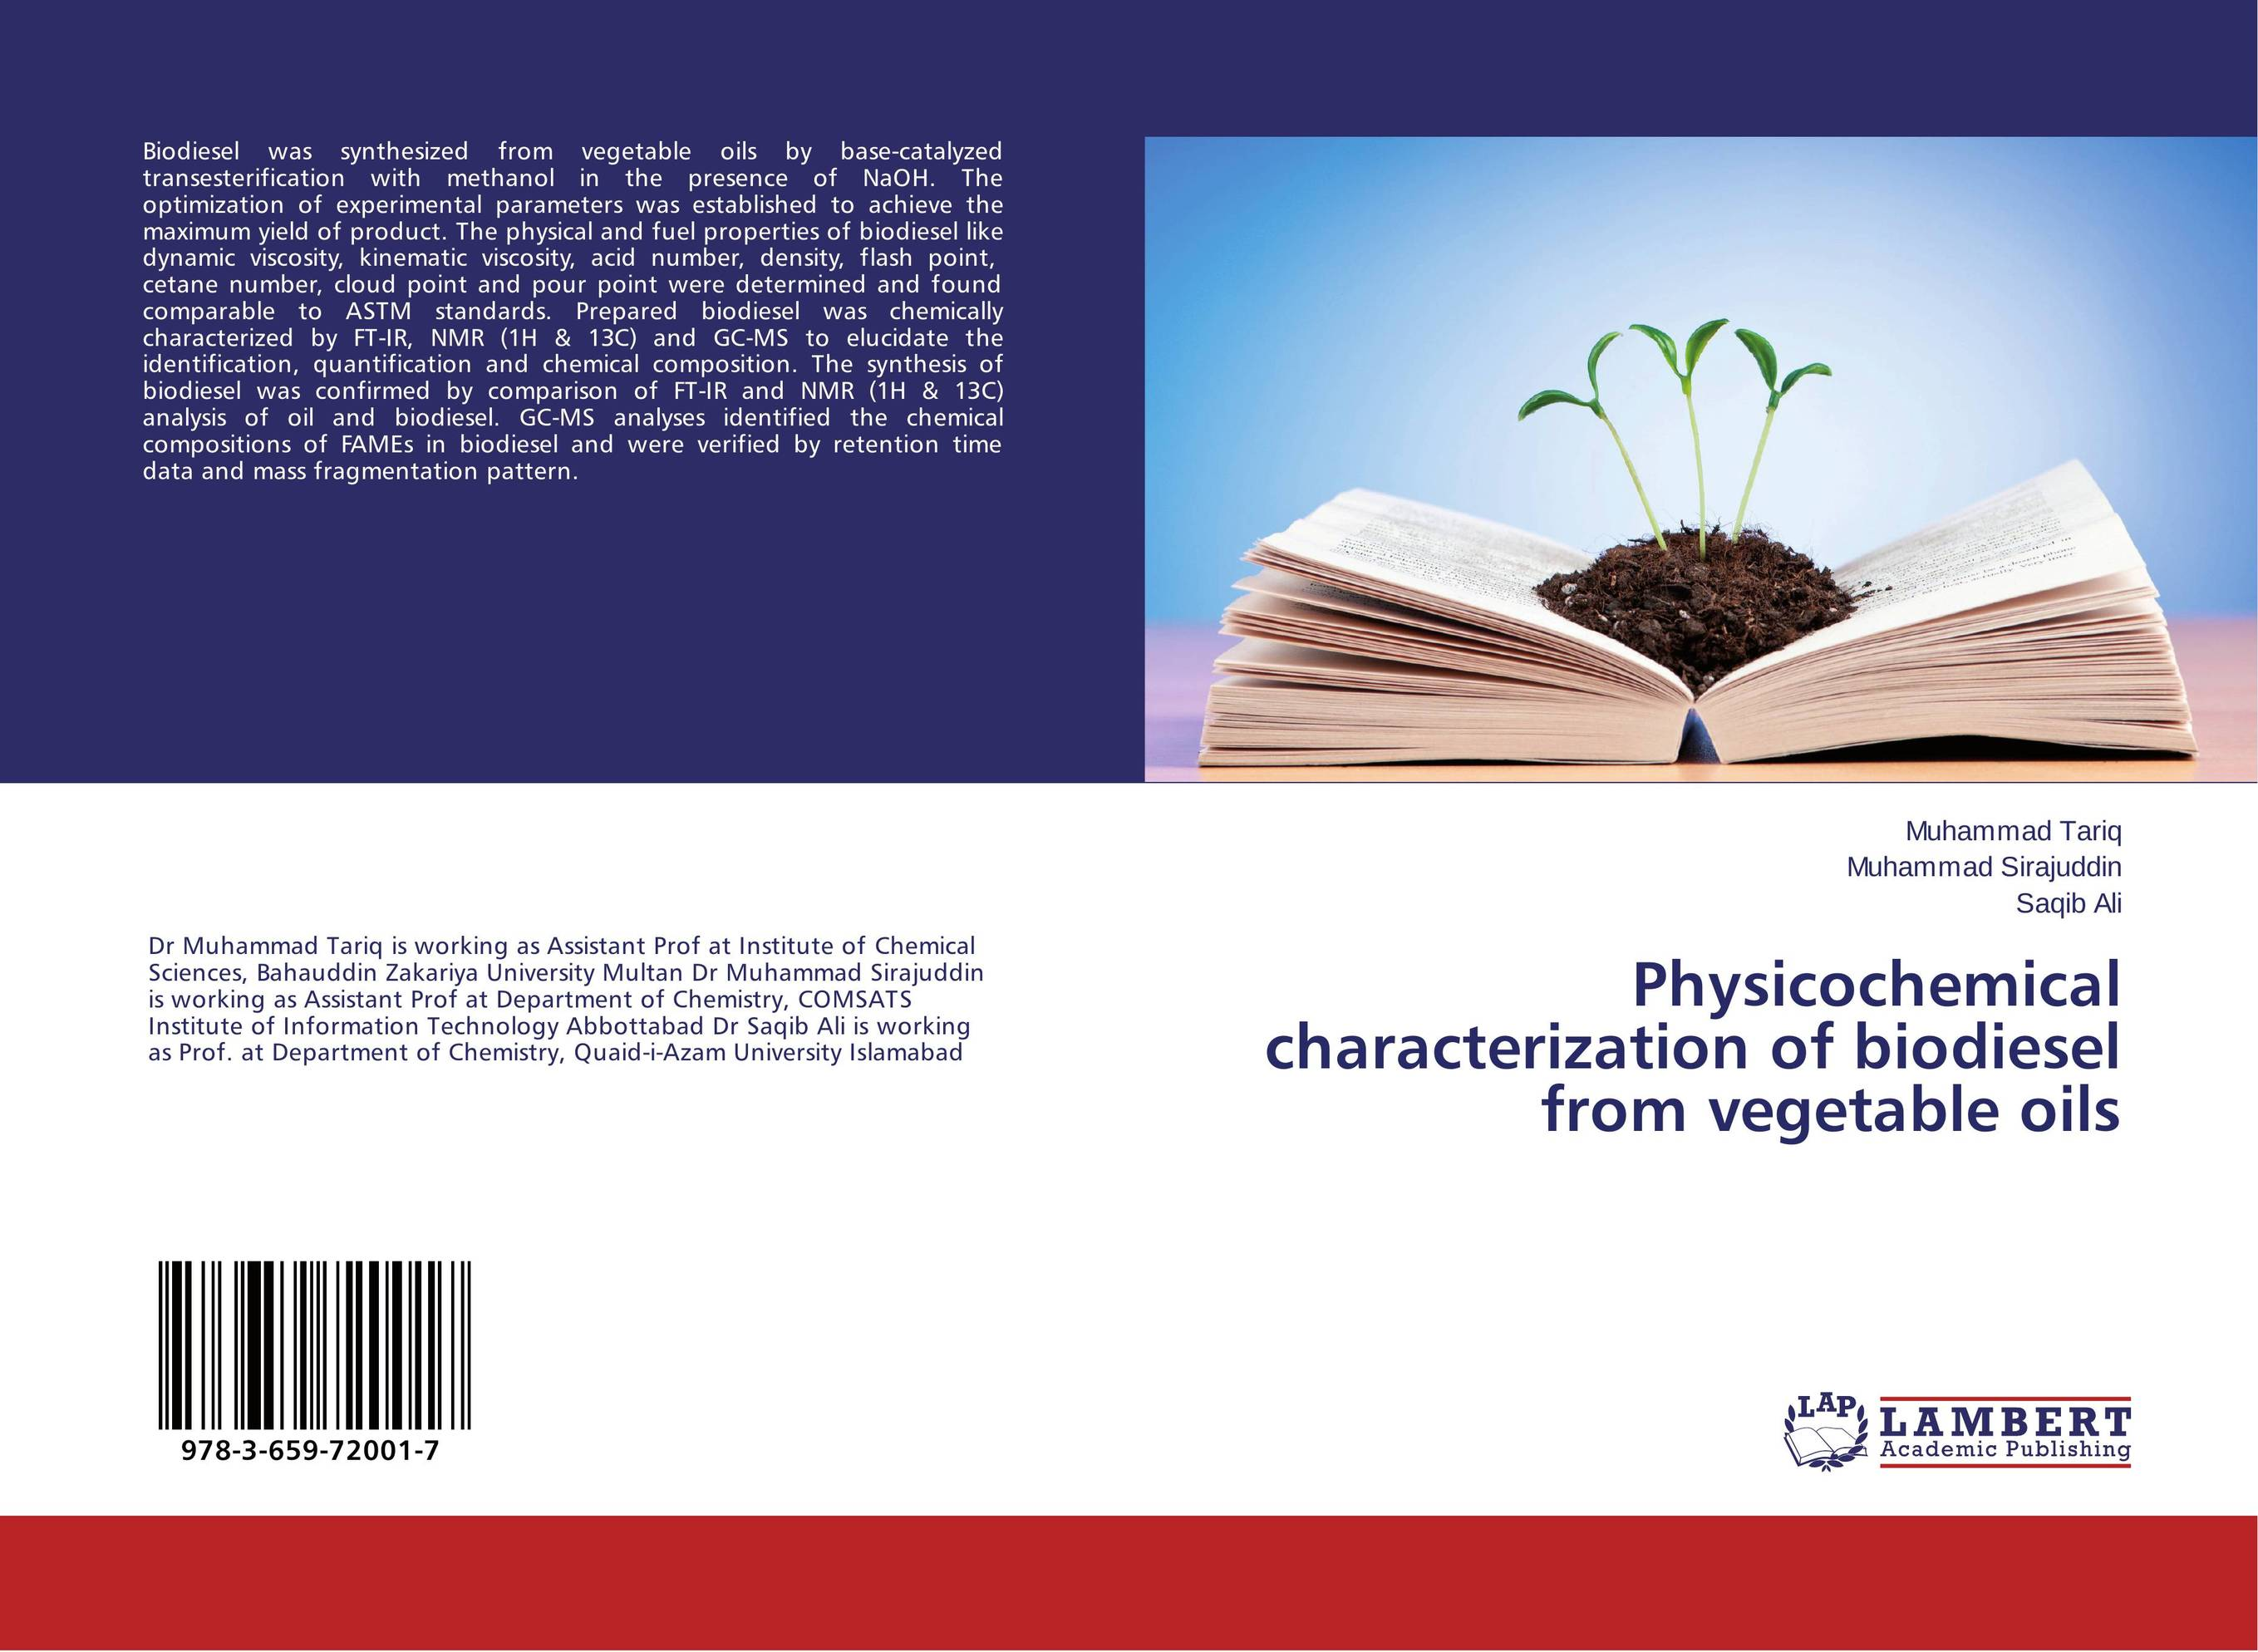 Physicochemical characterization of biodiesel from vegetable oils bim and the cloud